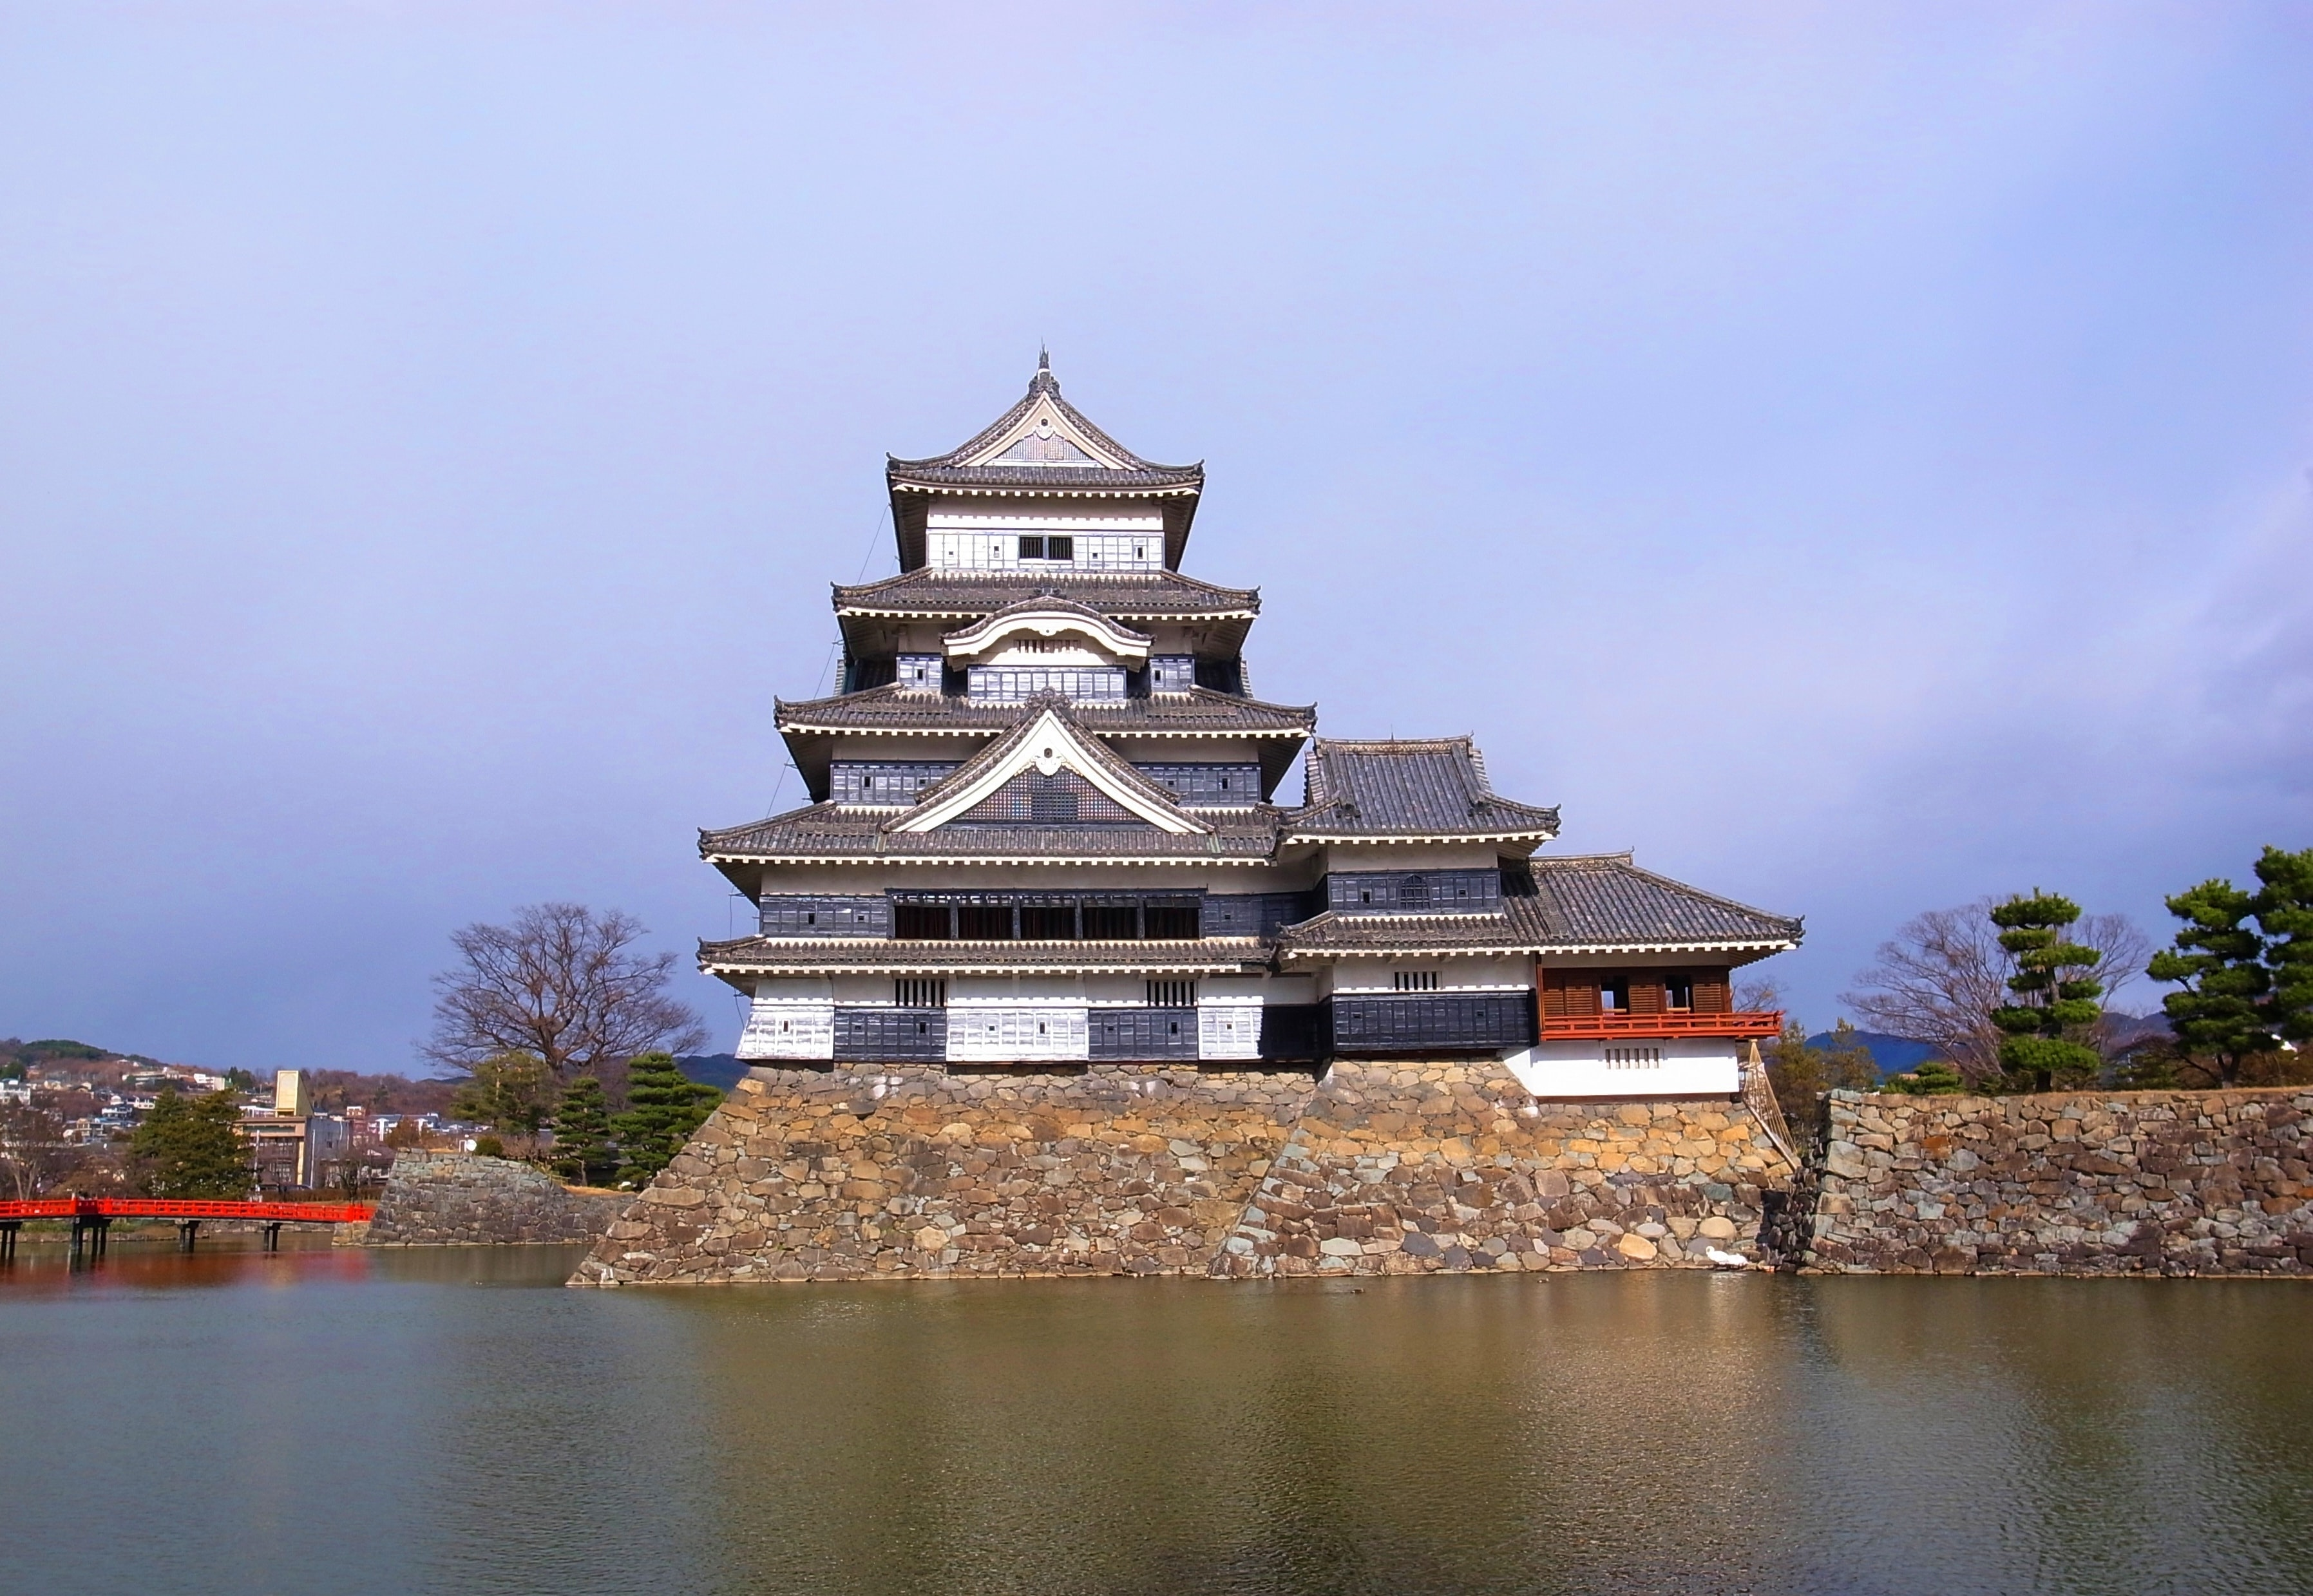 Must See Places In Japanjtb Usa Mount Fuji Shizuoka Tourist Pass Mini 3 Days Matsumoto Jo Is A Castle From The Early 16th Century Situated Nagano Prefecture Of Central Japan Among Numerous Castles Built Throughout